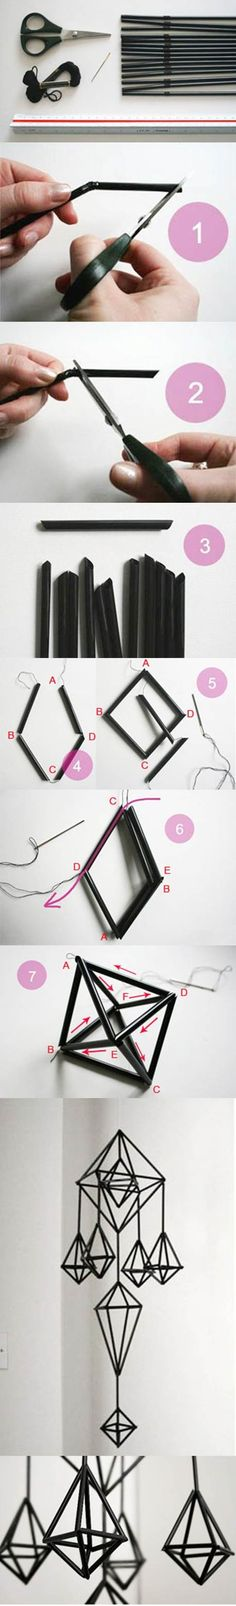 DIY Unique Hanging Decorations from Straws diy crafts craft ideas easy crafts diy ideas diy idea diy home easy diy for the home crafty decor home ideas diy decorations diy hanging decor